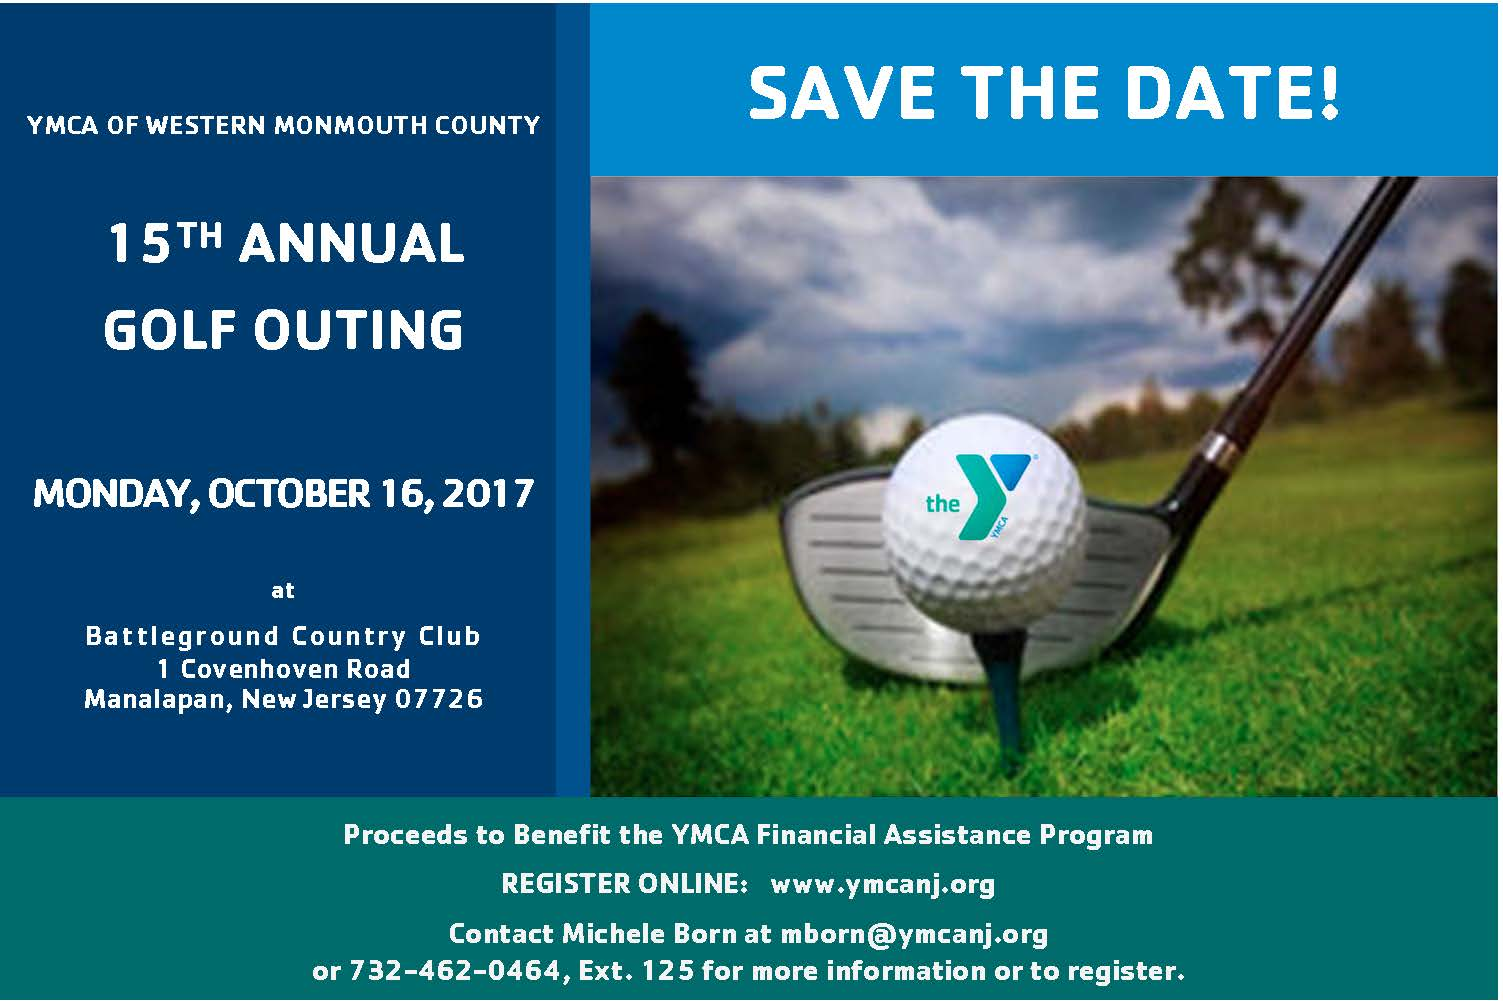 image-660195-YMCA_Save_The_Date_Final__-_7-12-17.jpg